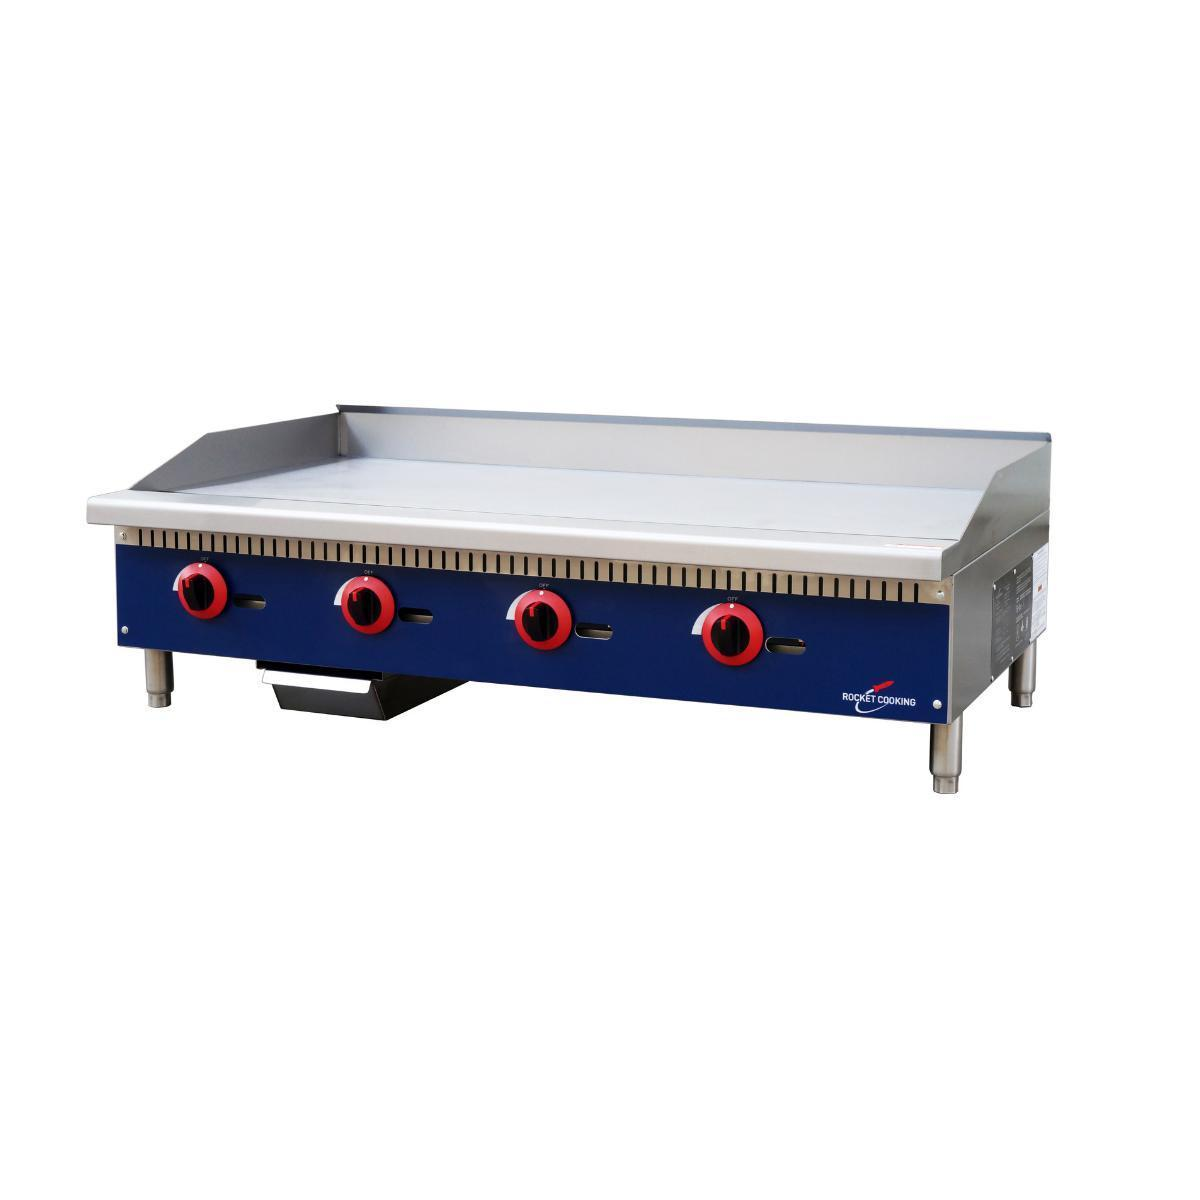 Rocket Cooking RCMG48 48 inch Manual Griddle